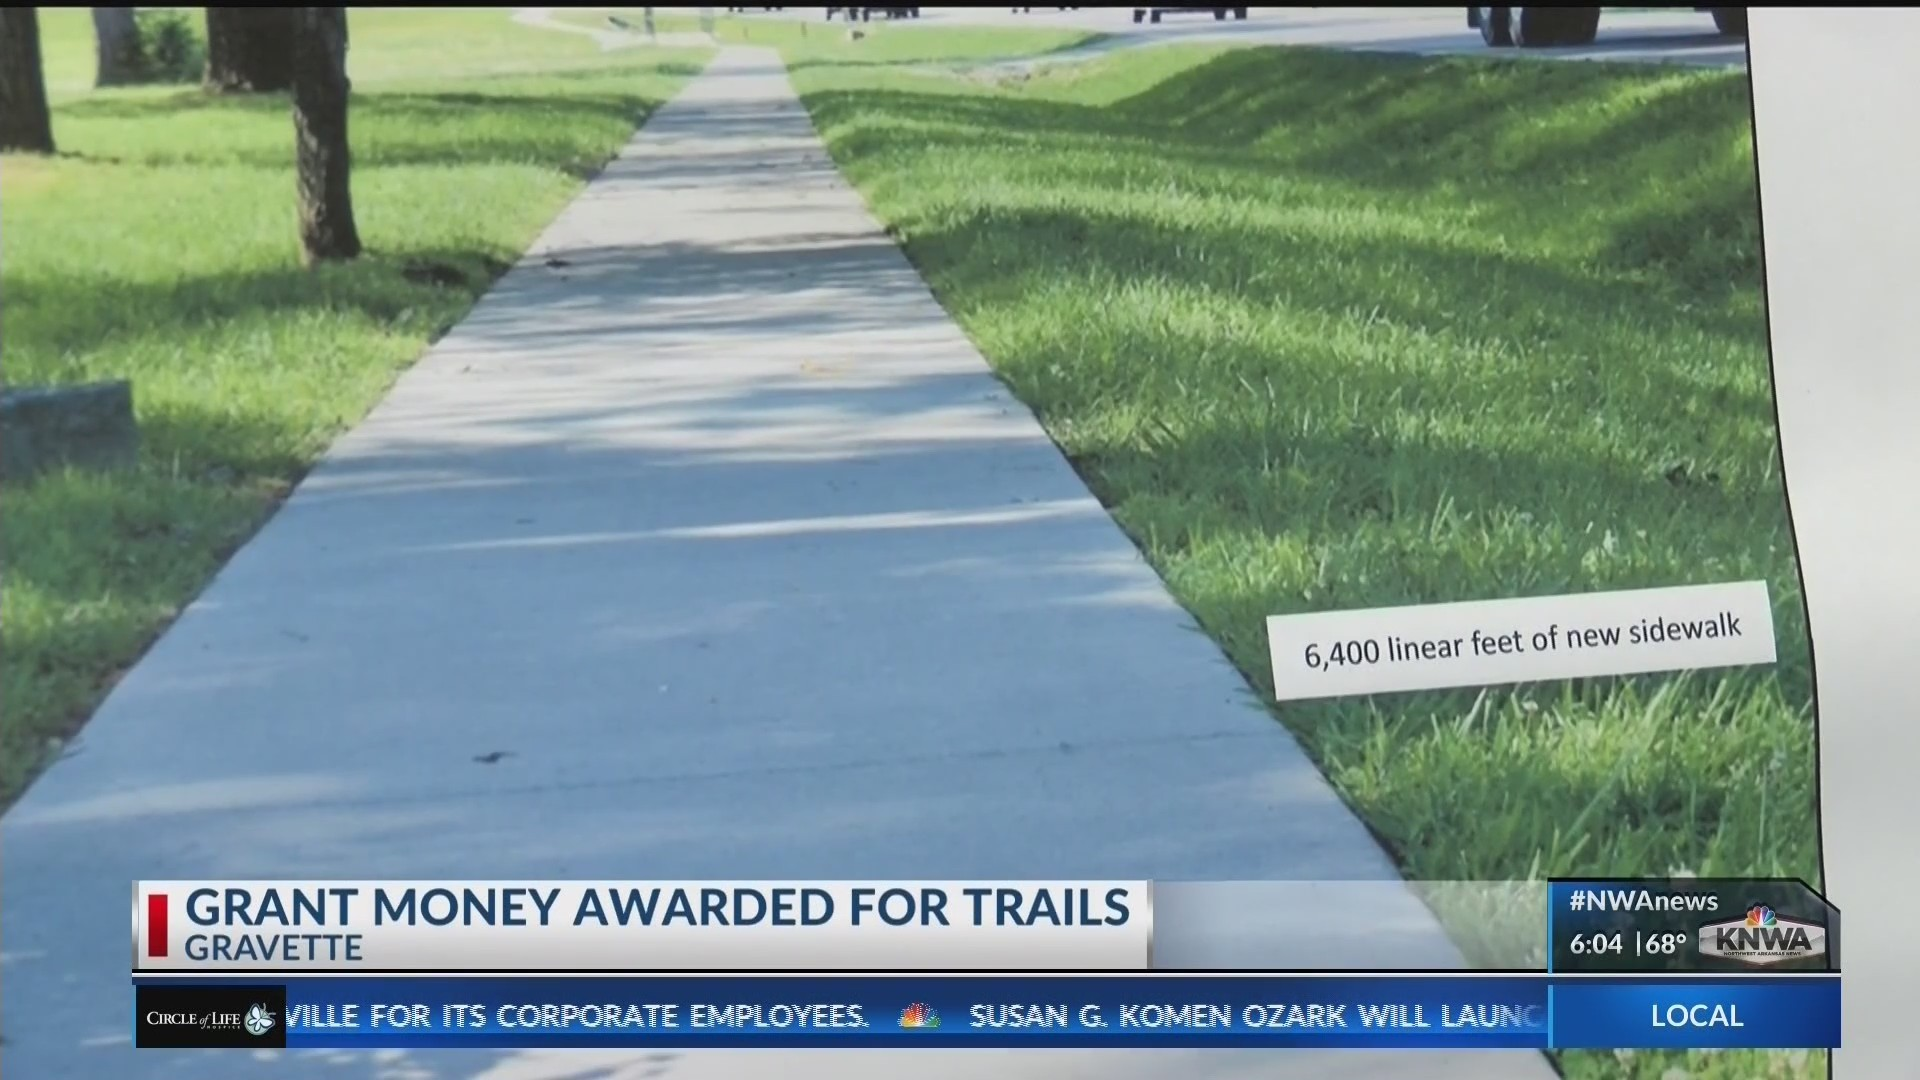 Grant_Money_Goes_Towards_Trails_in_Grave_0_20181201031913